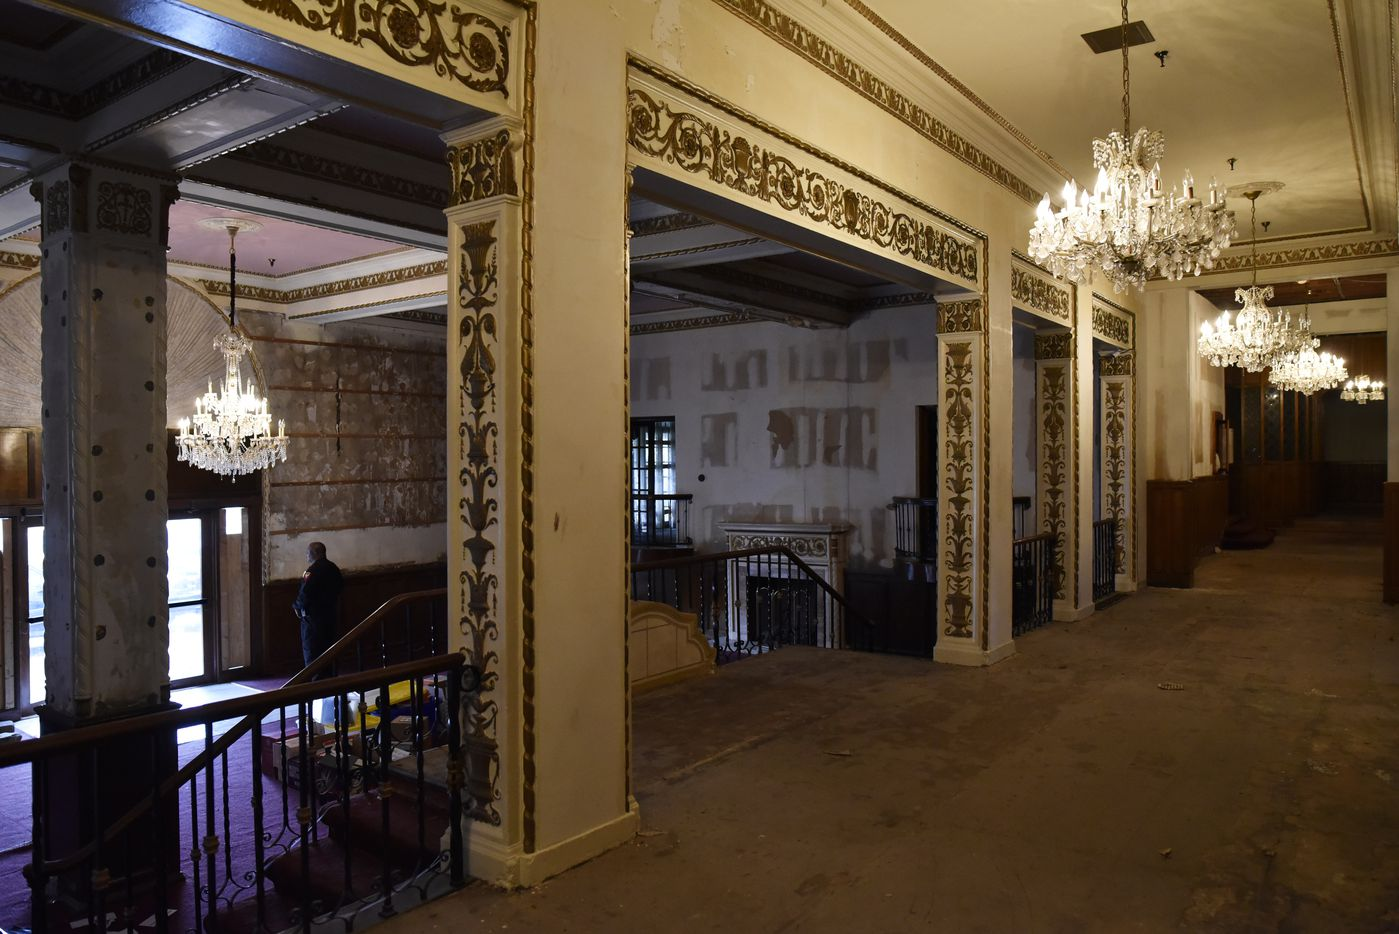 The main lobby inside the historic Ambassador Hotel seen in January 2019.